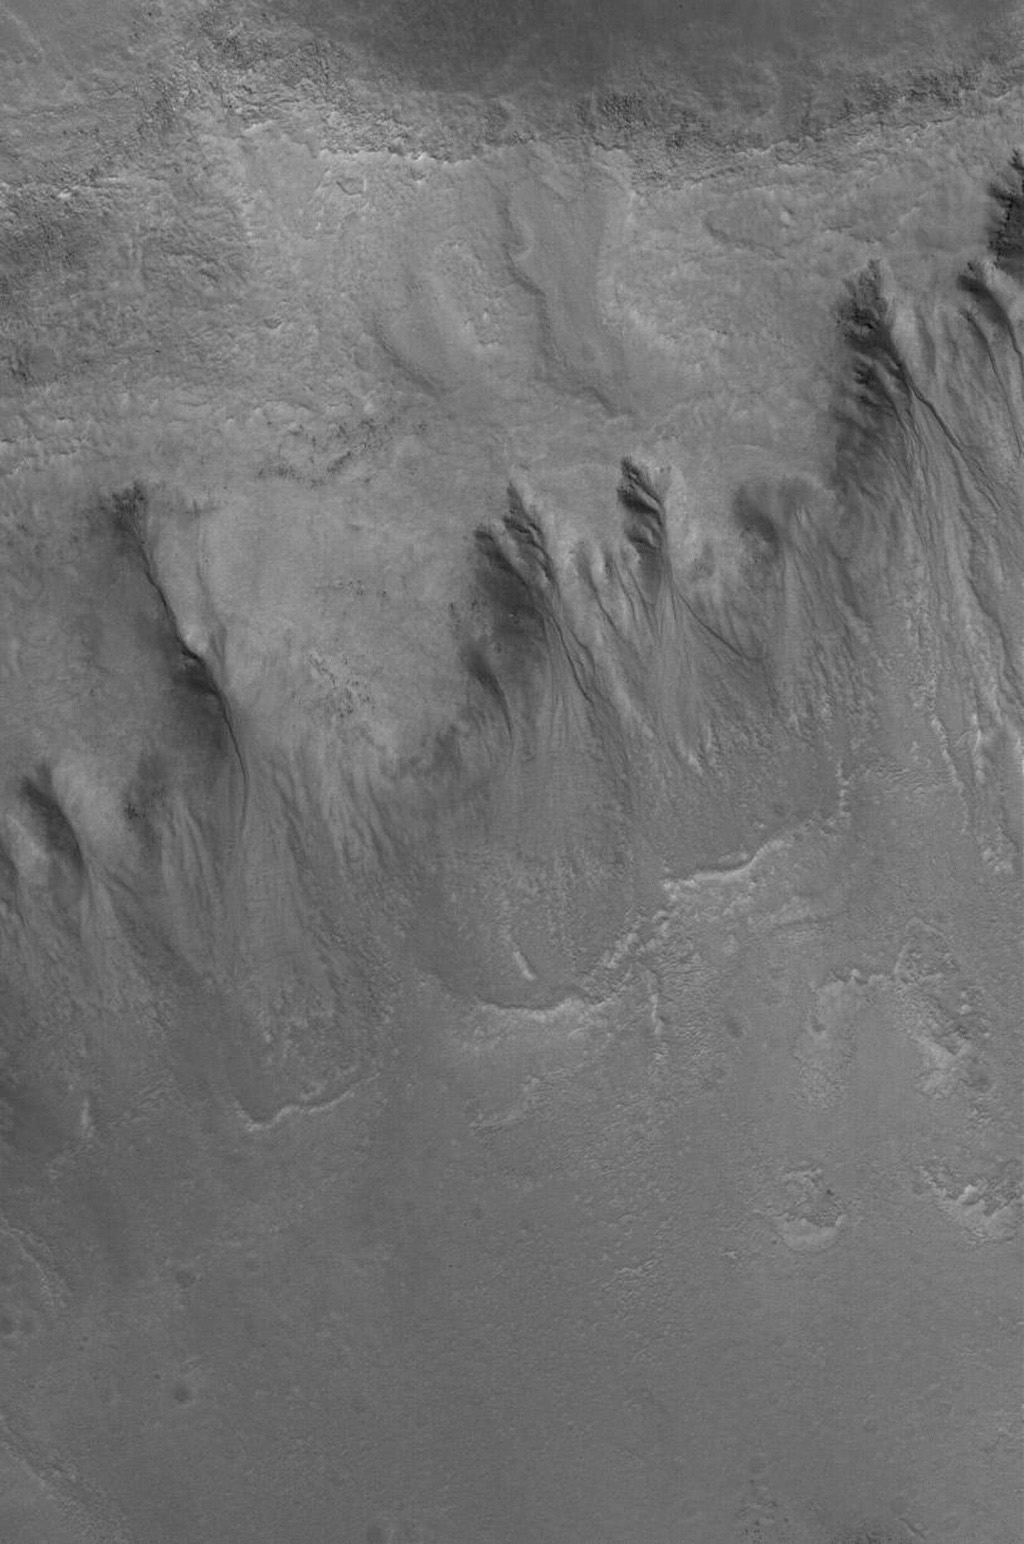 This image from NASA's Mars Global Surveyor shows a group of gullies formed on the equator-facing wall of a north mid-latitude crater. Gullies such as these might have formed from the erosive forces of liquid water.